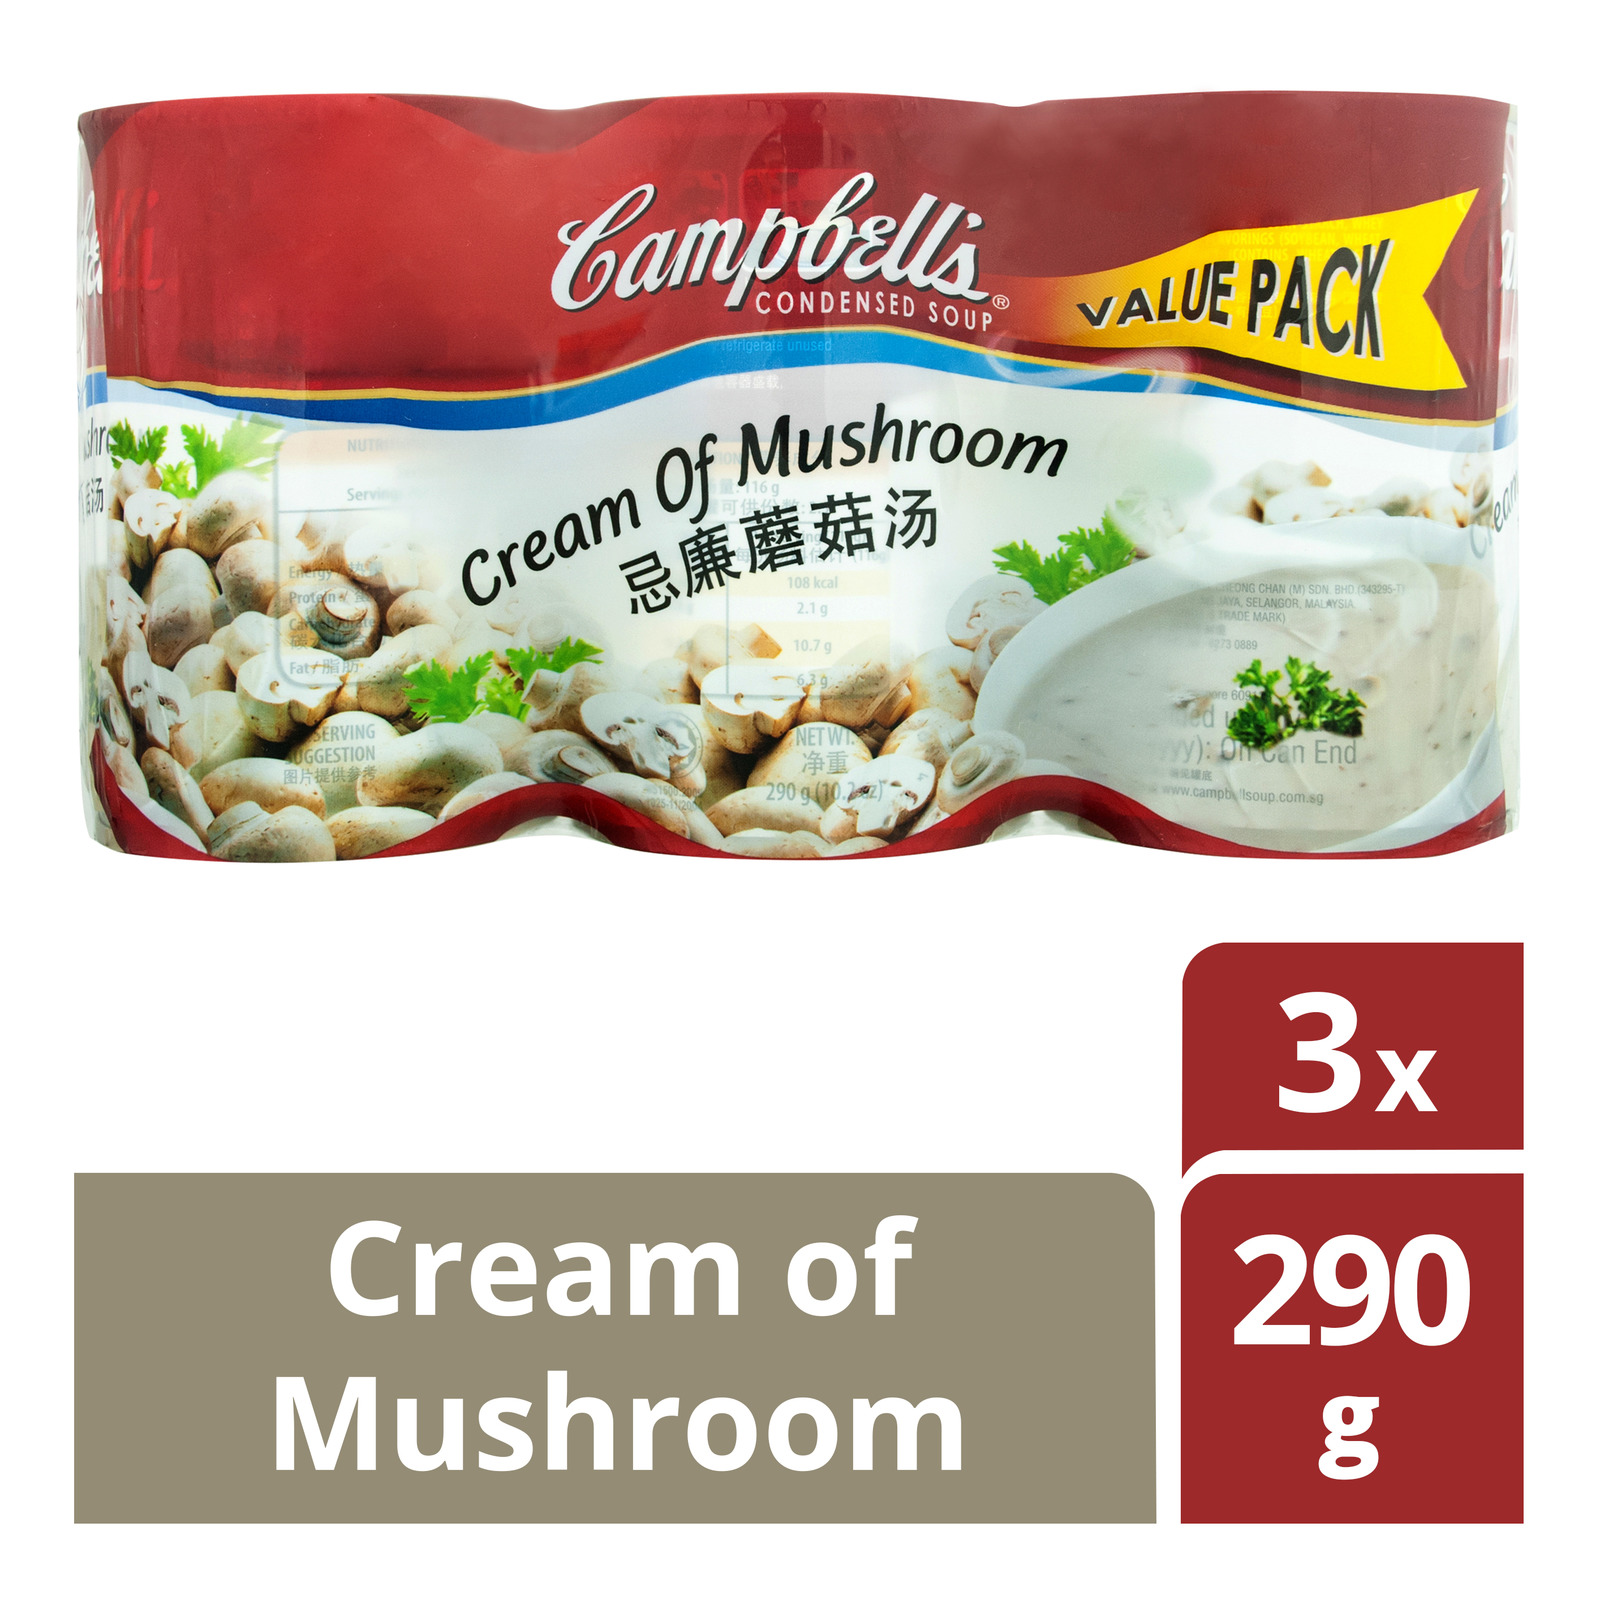 Campbell's Condensed Soup - Cream of Mushroom